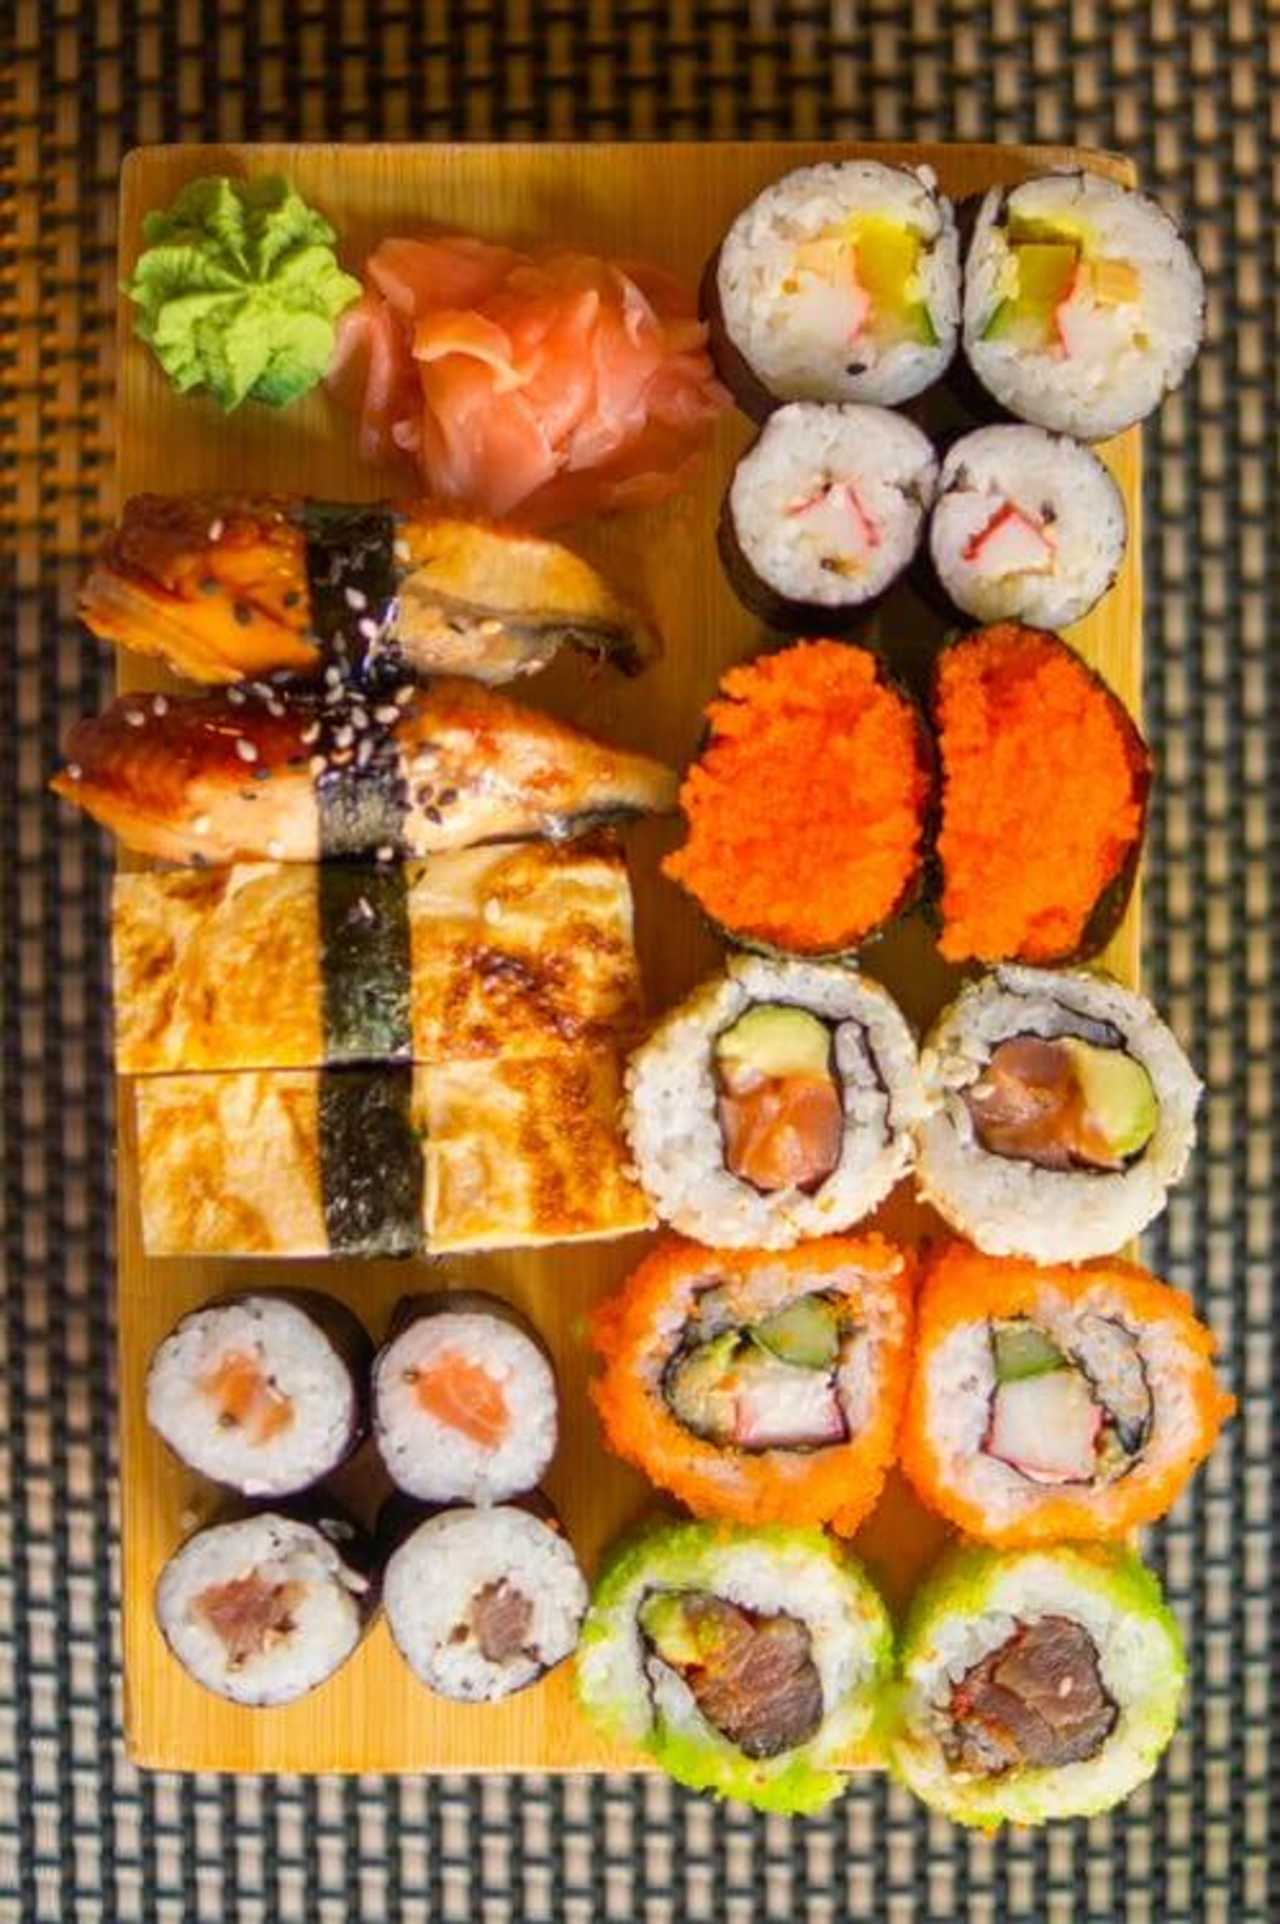 OEC Sushi - Food and Beverage - Sushi in Anchorage AK